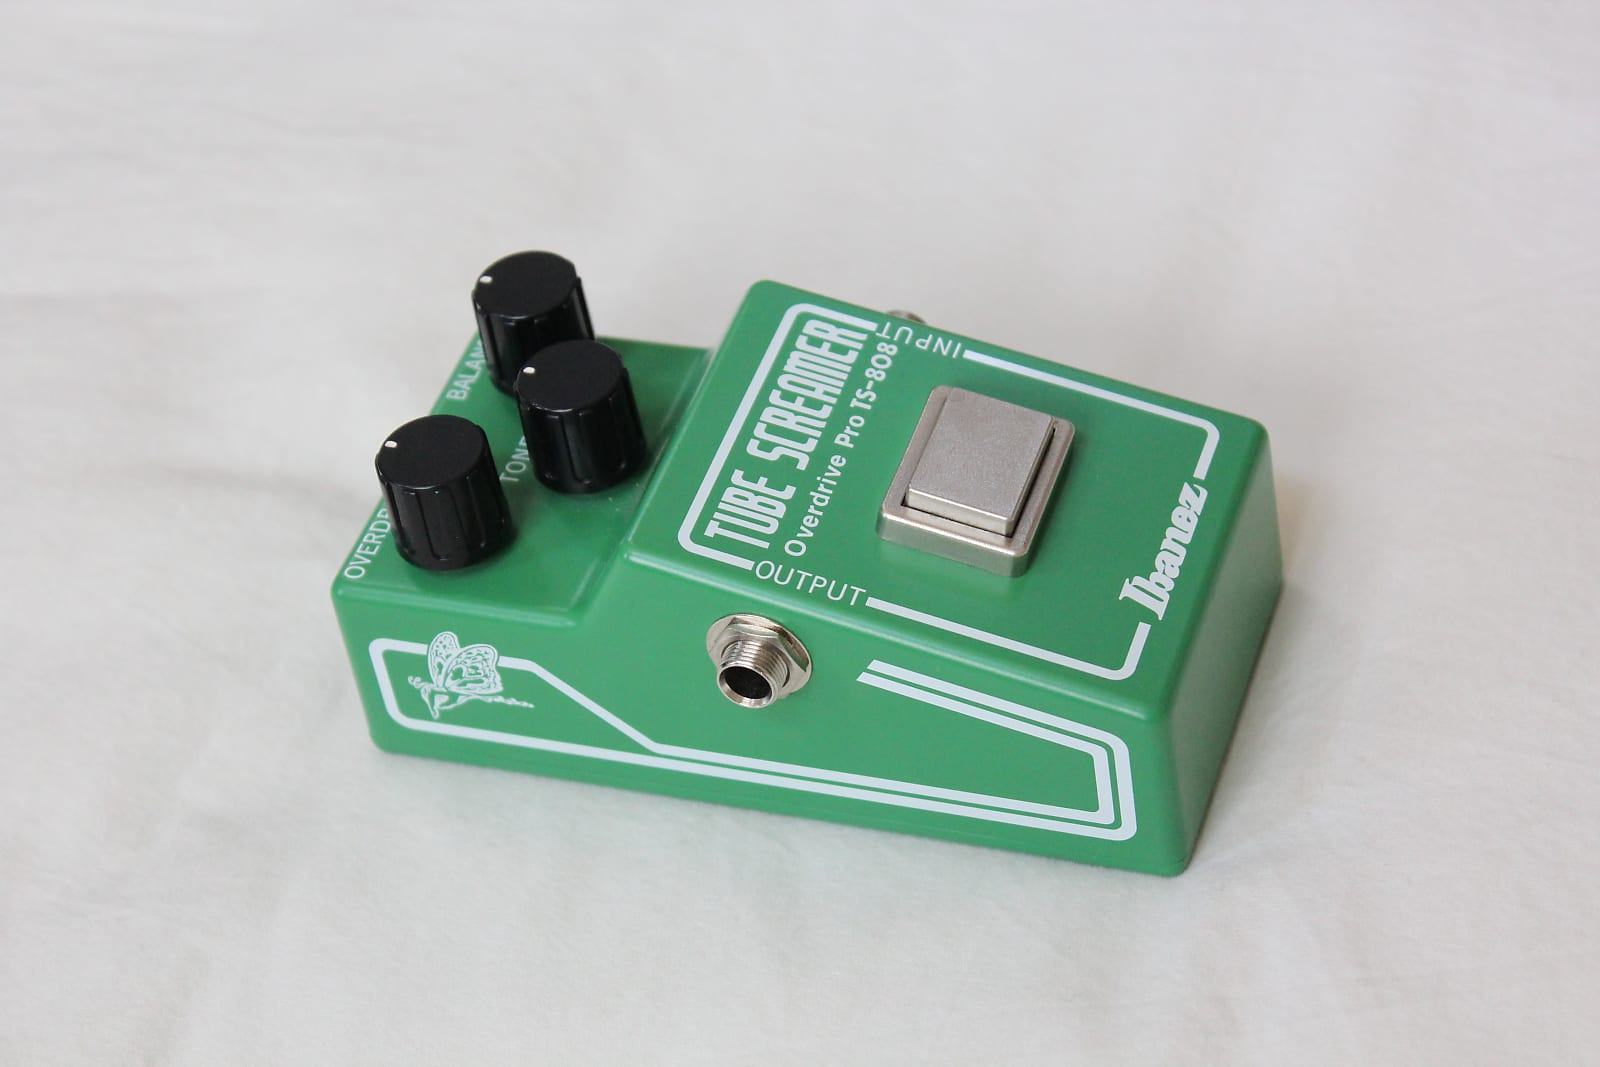 2014 Ibanez TS808 Tube Screamer Overdrive Pro 35th Anniversary Limited  Edition Number 1221 Japan